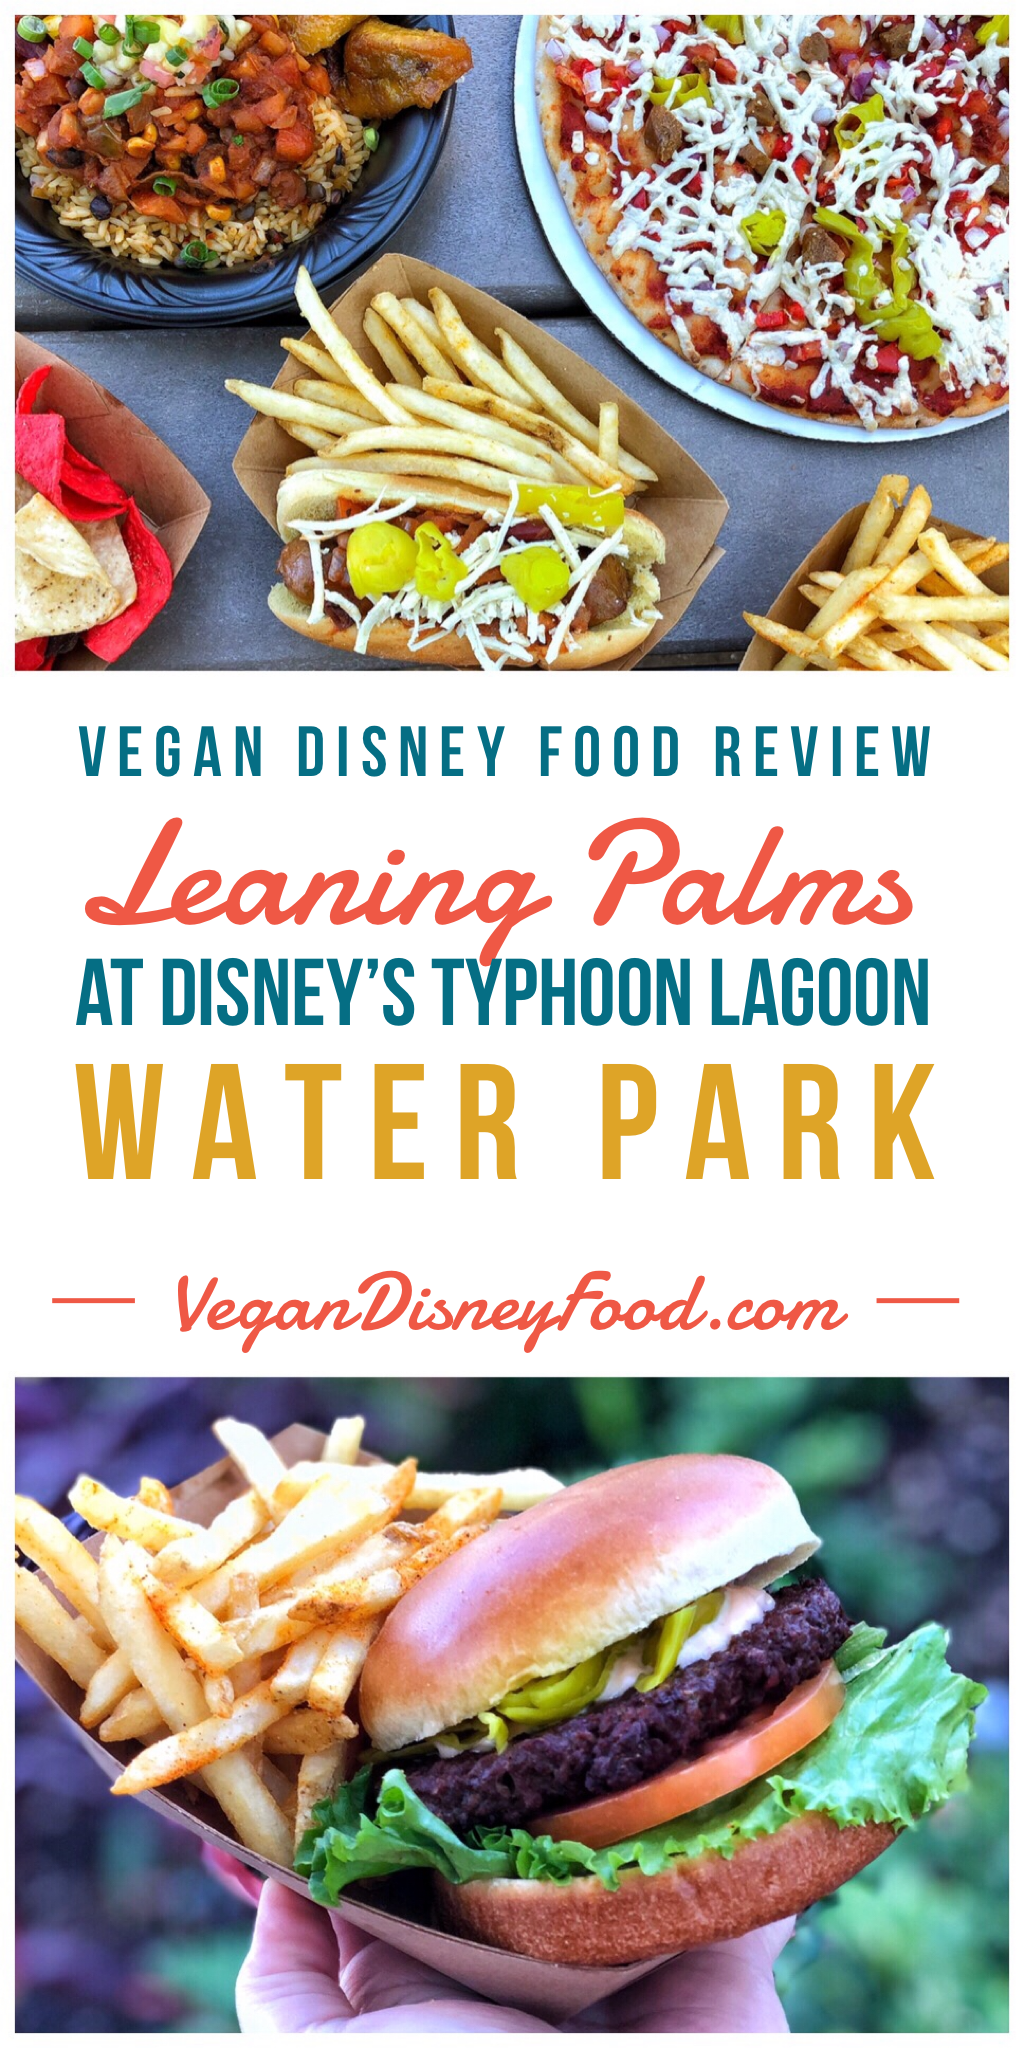 Vegan Disney Food Review: Leaning Palms at Disney's Typhoon Lagoon Water Park In Walt Disney World